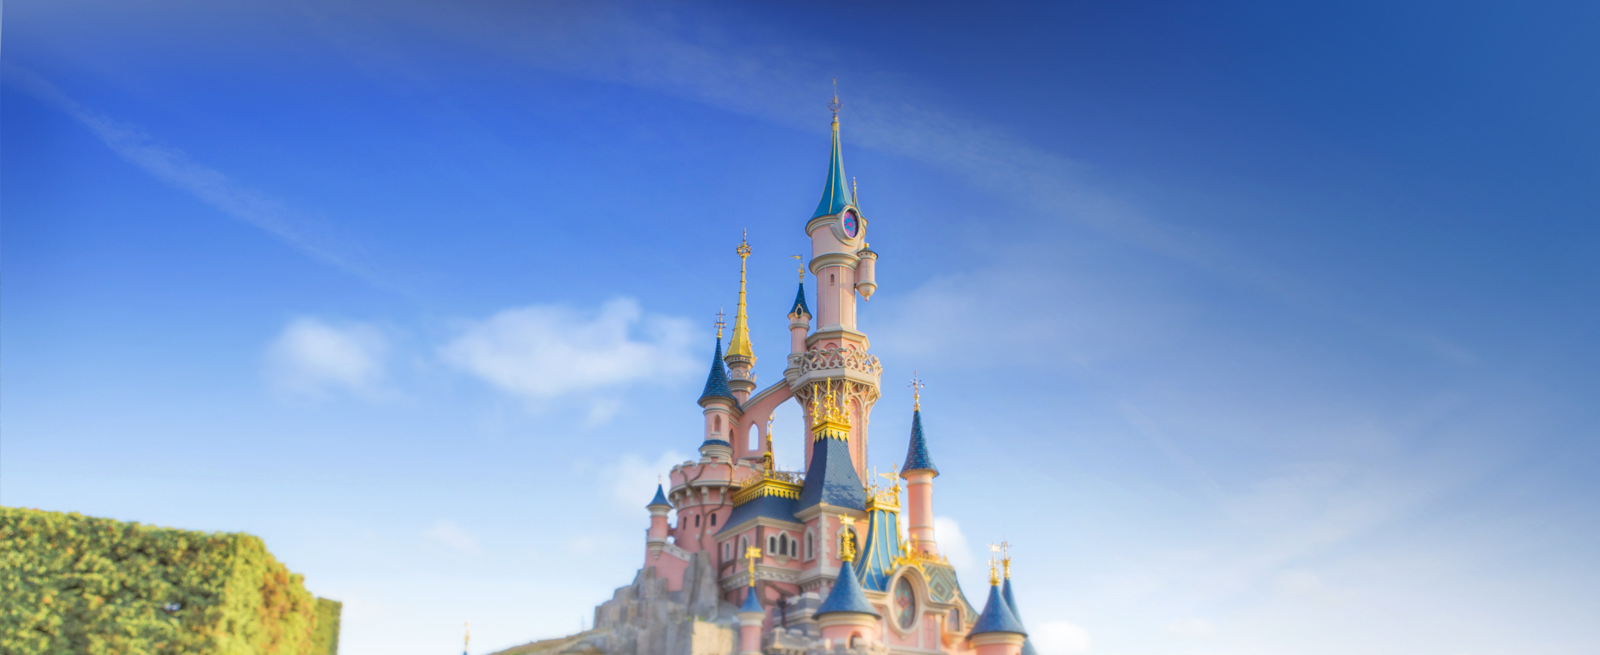 Castillo Disneyland© Paris